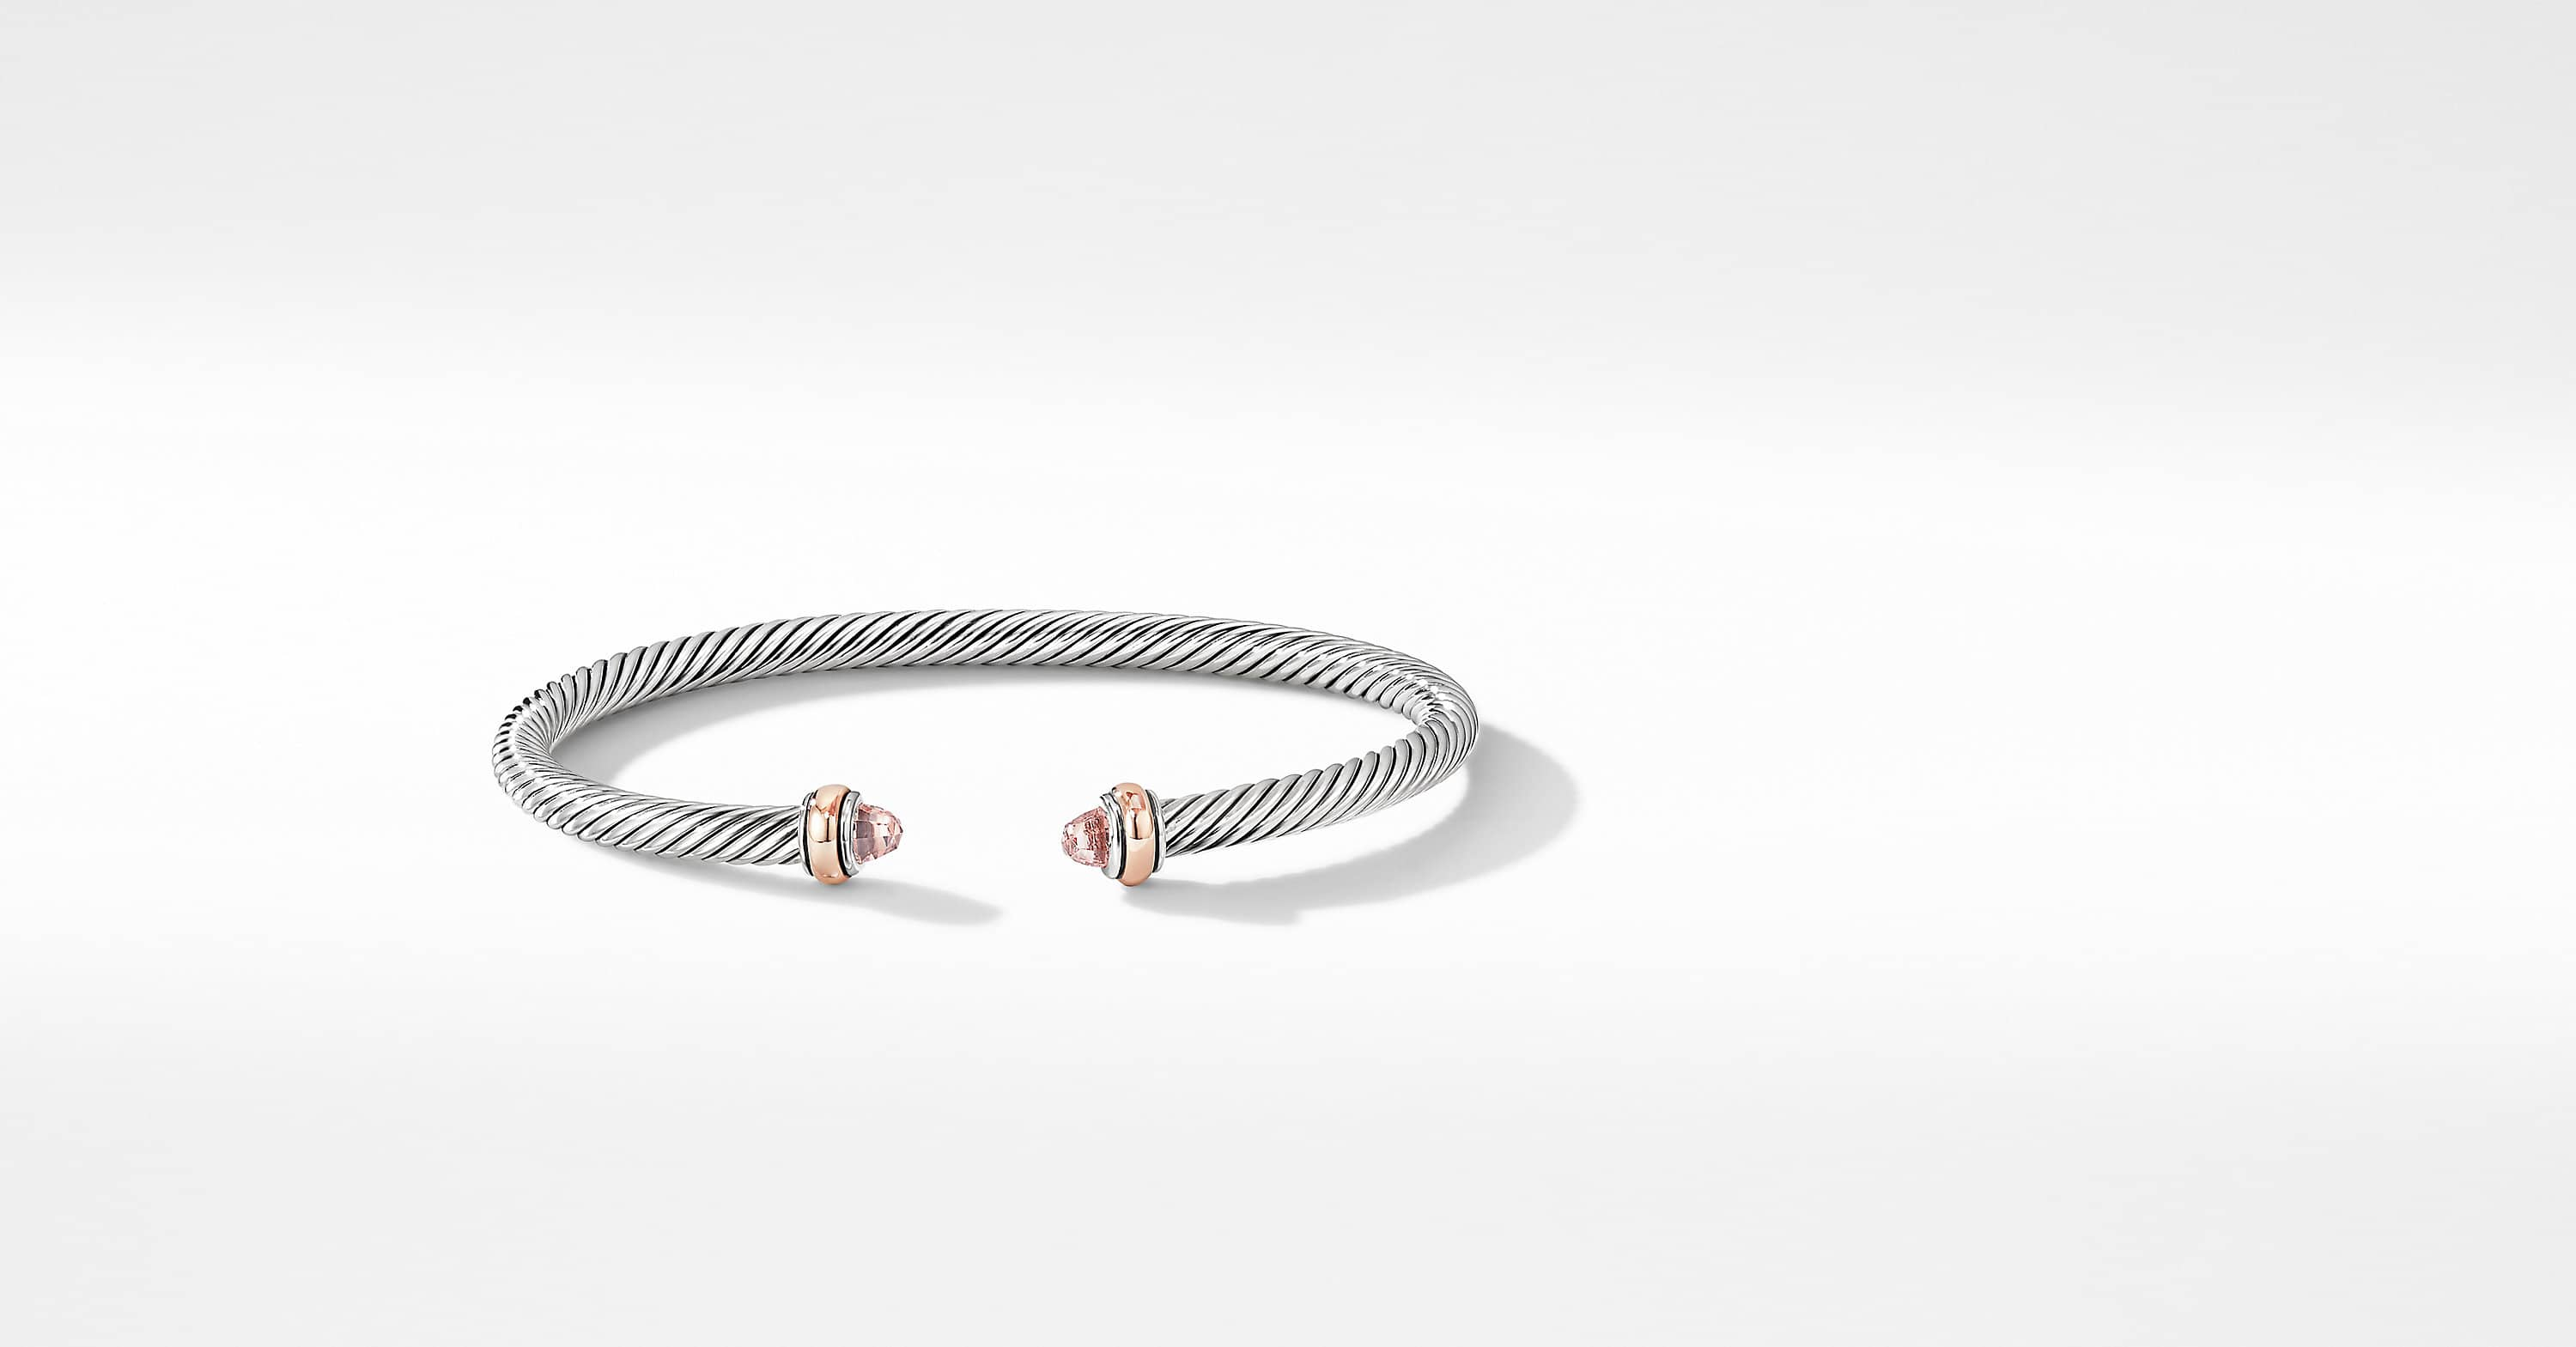 Bracelet Cable Classics avec or rose 18 carats, 4 mm